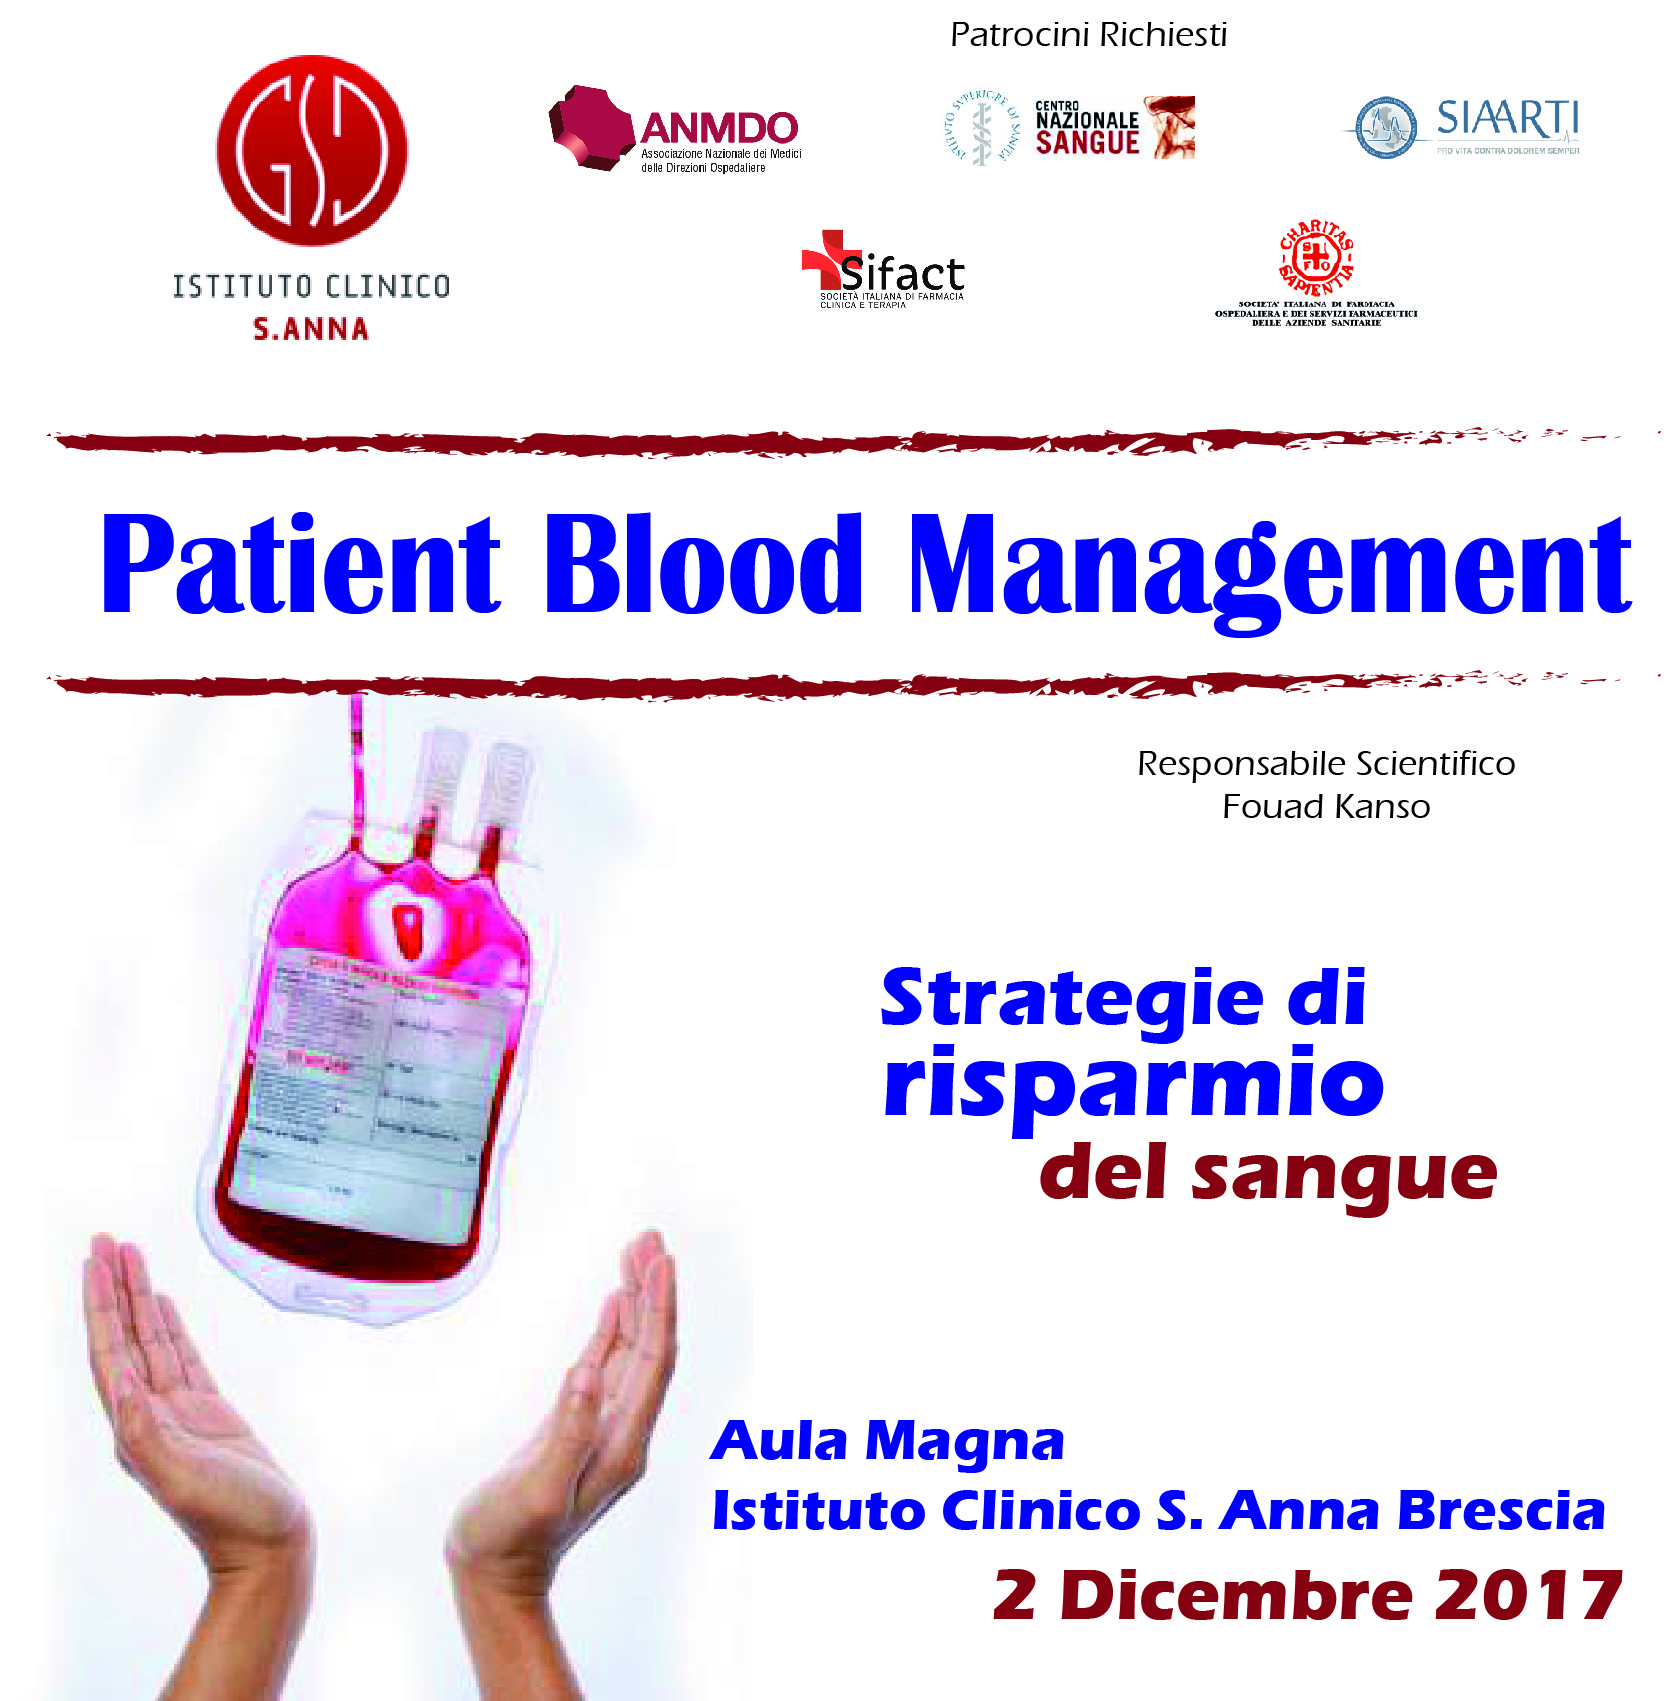 PATIENT BLOOD MANAGEMENT. STRATEGIE DI RISPARMIO DEL SANGUE